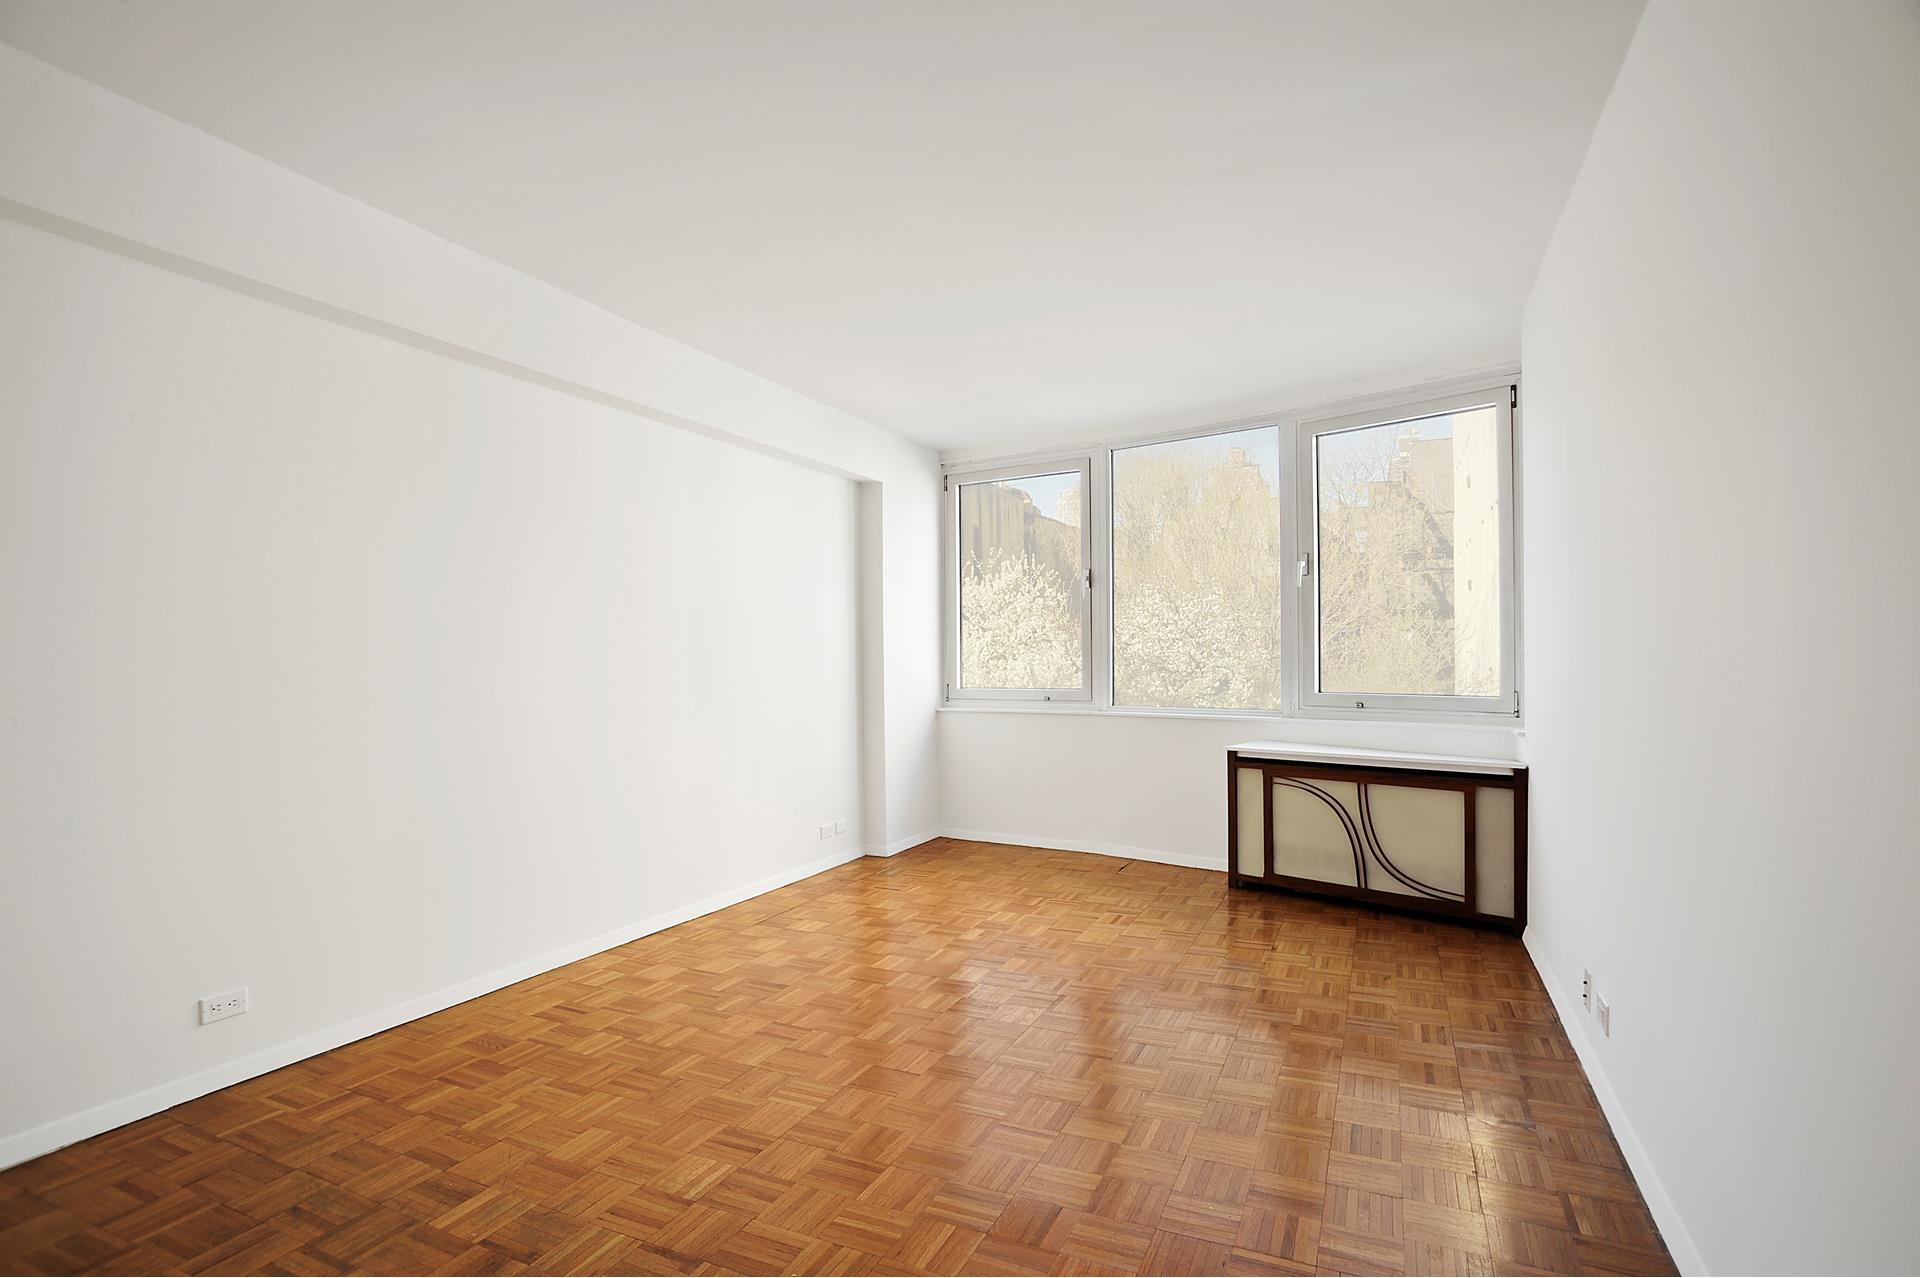 (CYOF) Residence 4ZZ is a bright and spacious one bedroom. The living room windows have double exposures to North and East and provide ample lights throughout the day. The spacious bedroom can easily accommodate a king size bed. Residence offers good closet   space, spacious layout, tree line top view. Located at 350 W 50th Street, on 8th Avenue, Worldwide Plaza is a full service condominium building conveniently located to public transportations, great restaurants Hells kitchen, Central Park, and Theaters.